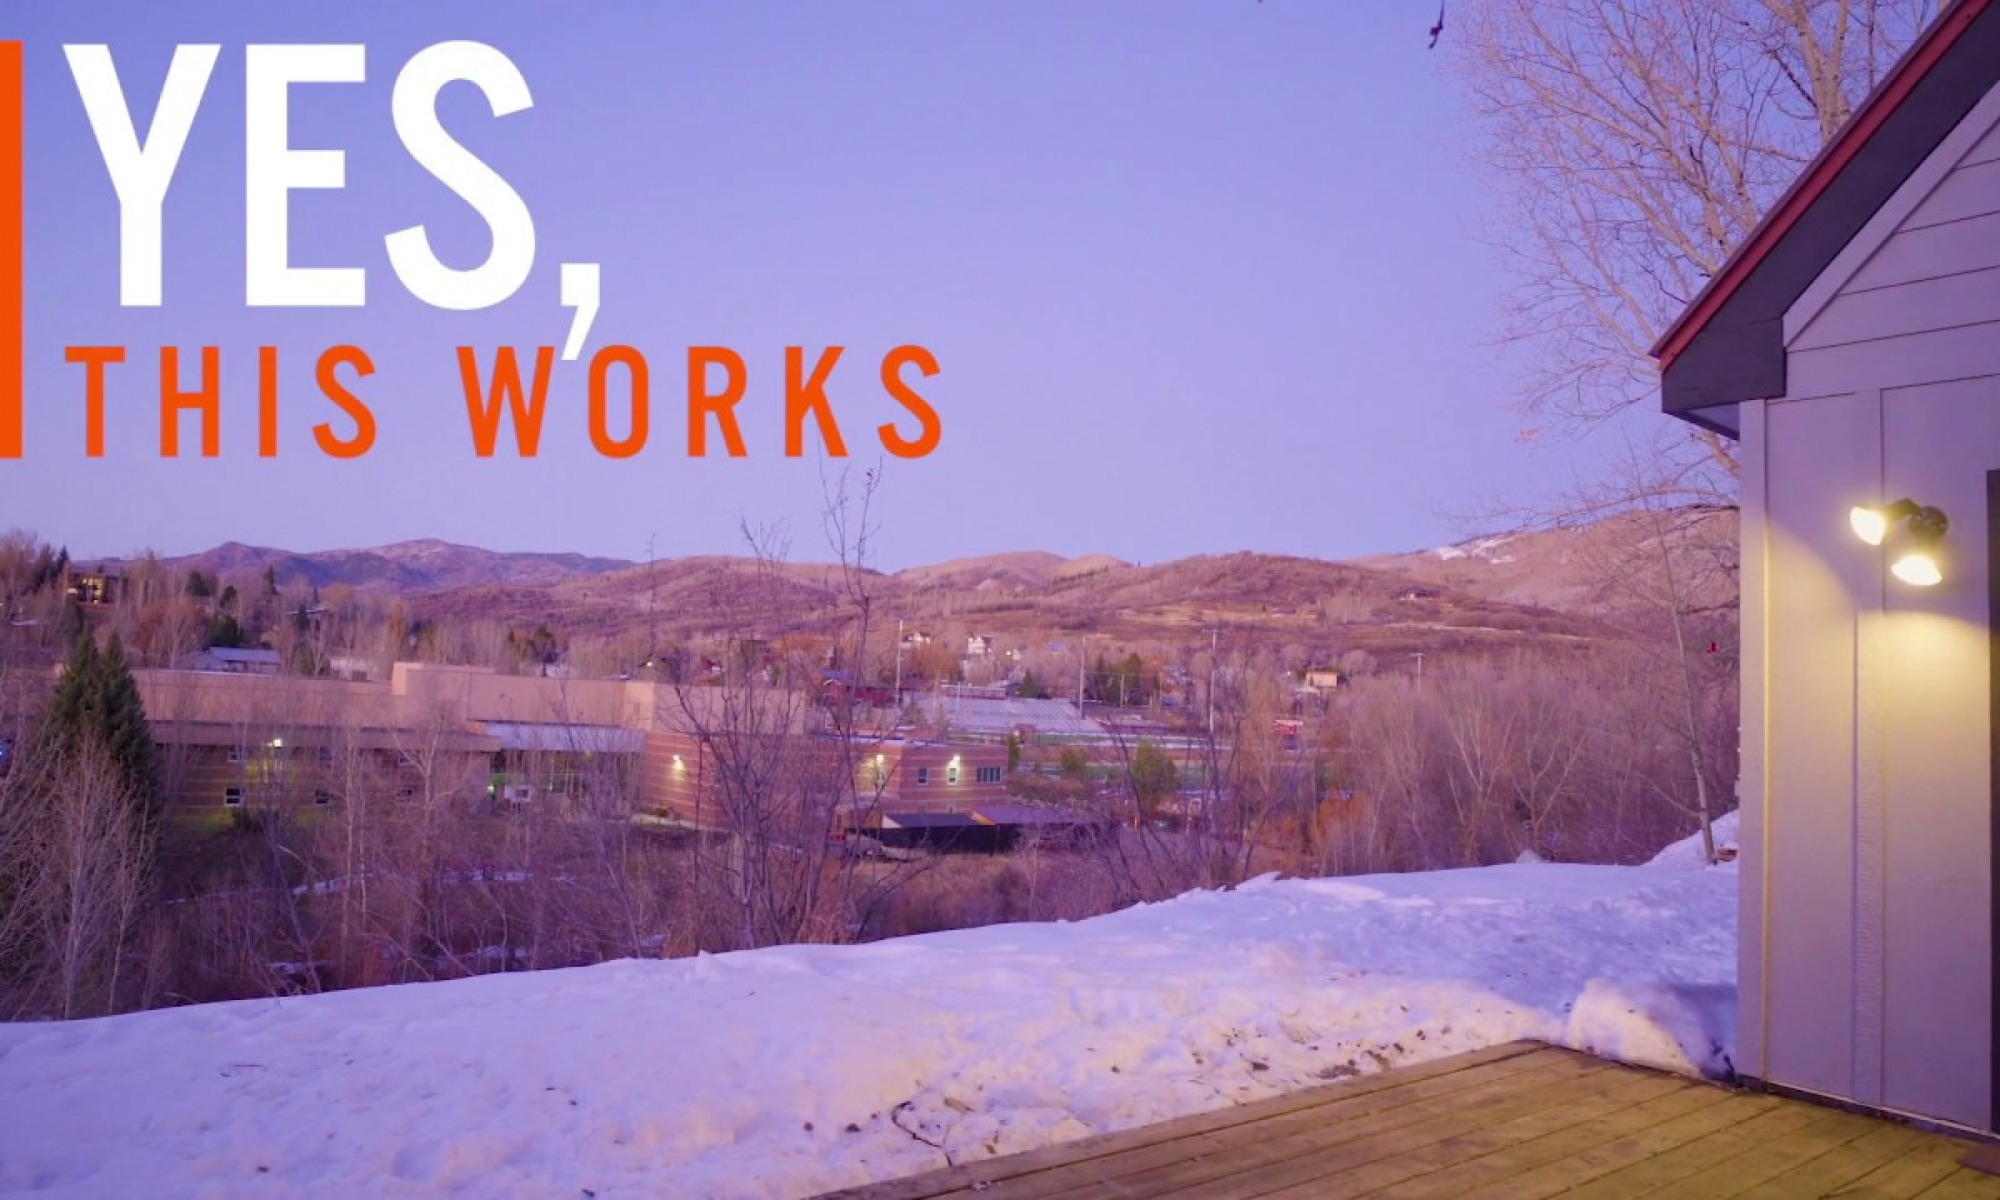 Steamboat Point Home SELLS with VIDEO and Proven Marketing